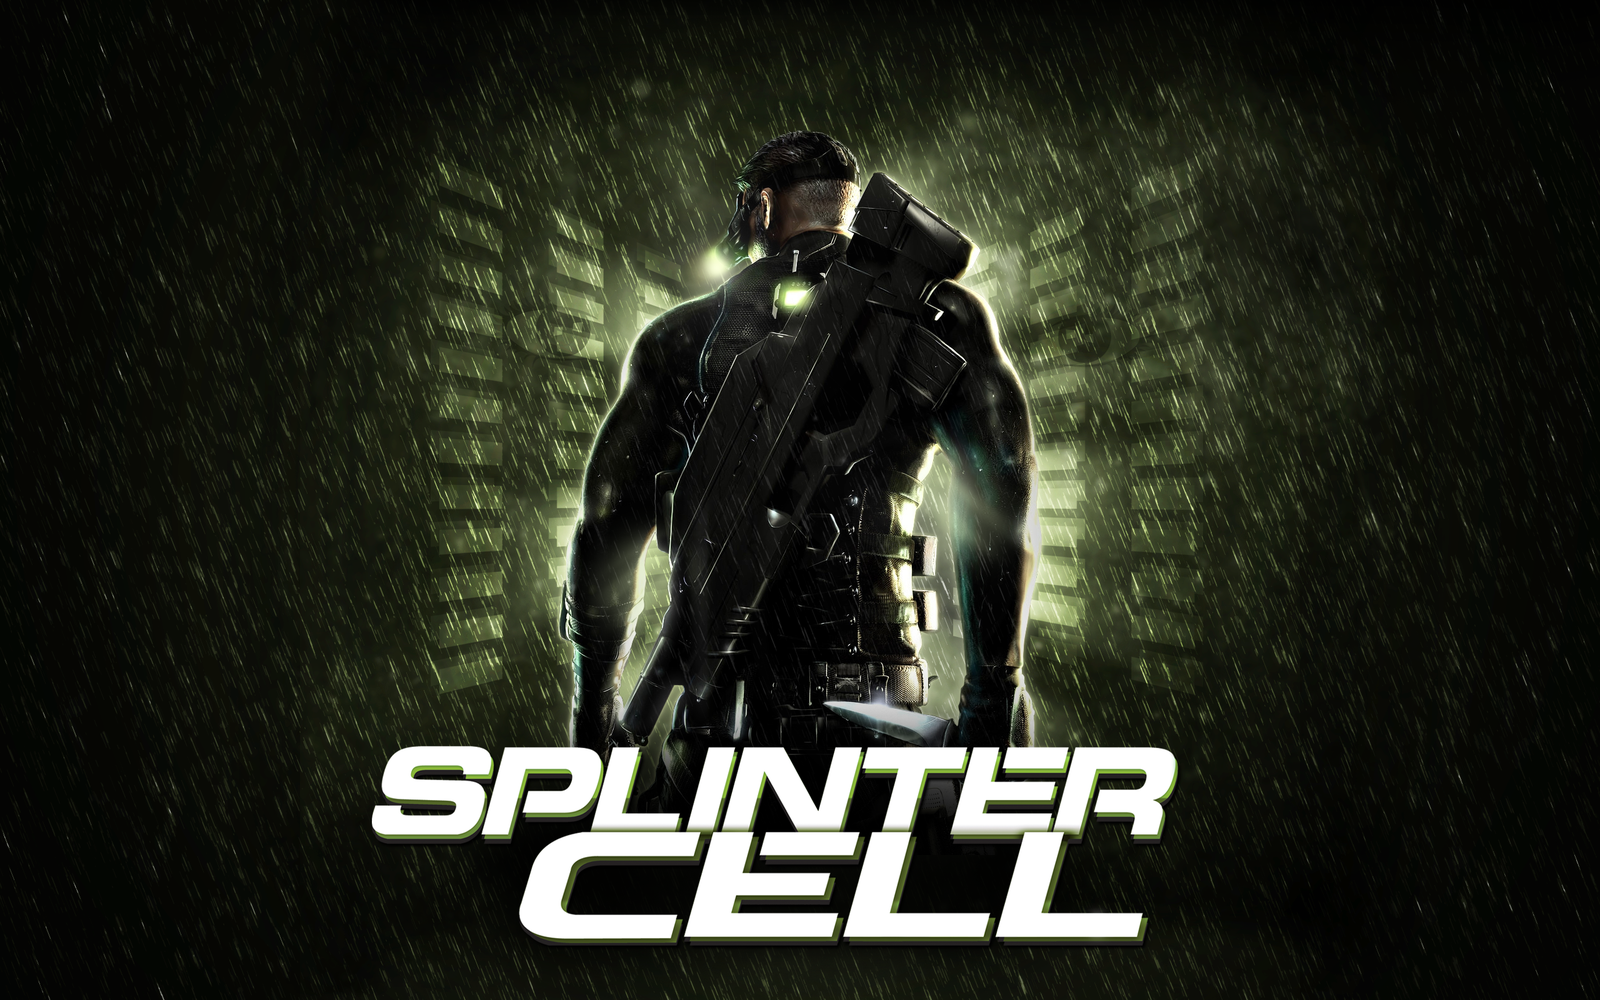 Free Download Splinter Cell Wallpaper By Inimrod 1600x1000 For